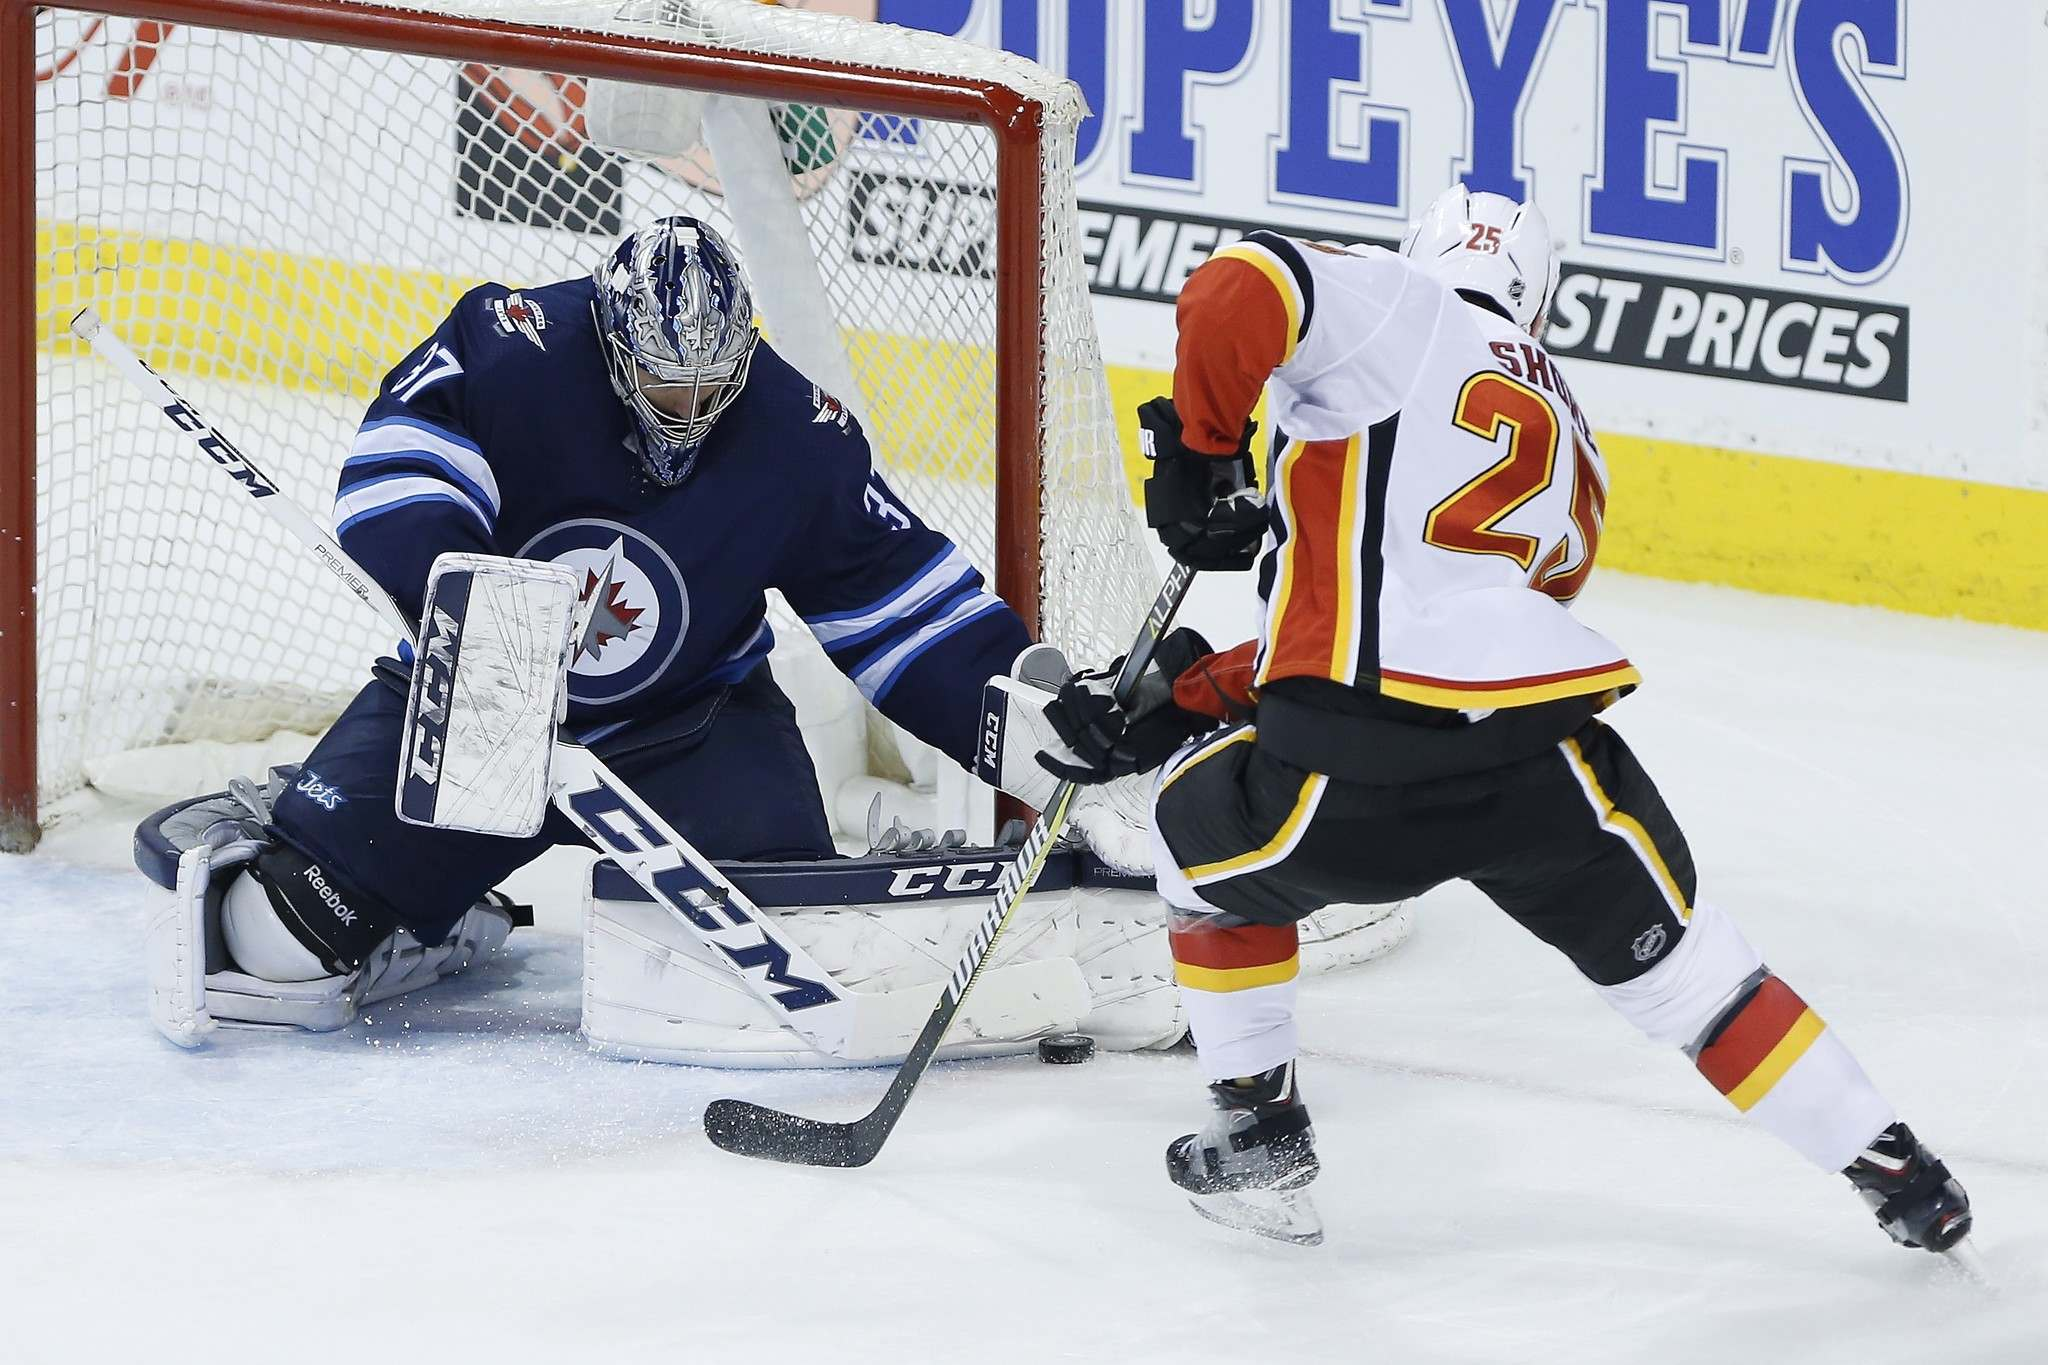 <p>Winnipeg Jets goaltender Connor Hellebuyck saves the breakaway attempt by Calgary Flames&#39; Nick Shore last Thursday. Hellebuyck is expecting the intensity to ramp up during the playoffs. &#34;I'm just going to try to stop every puck I possibly can.&#34;</p>